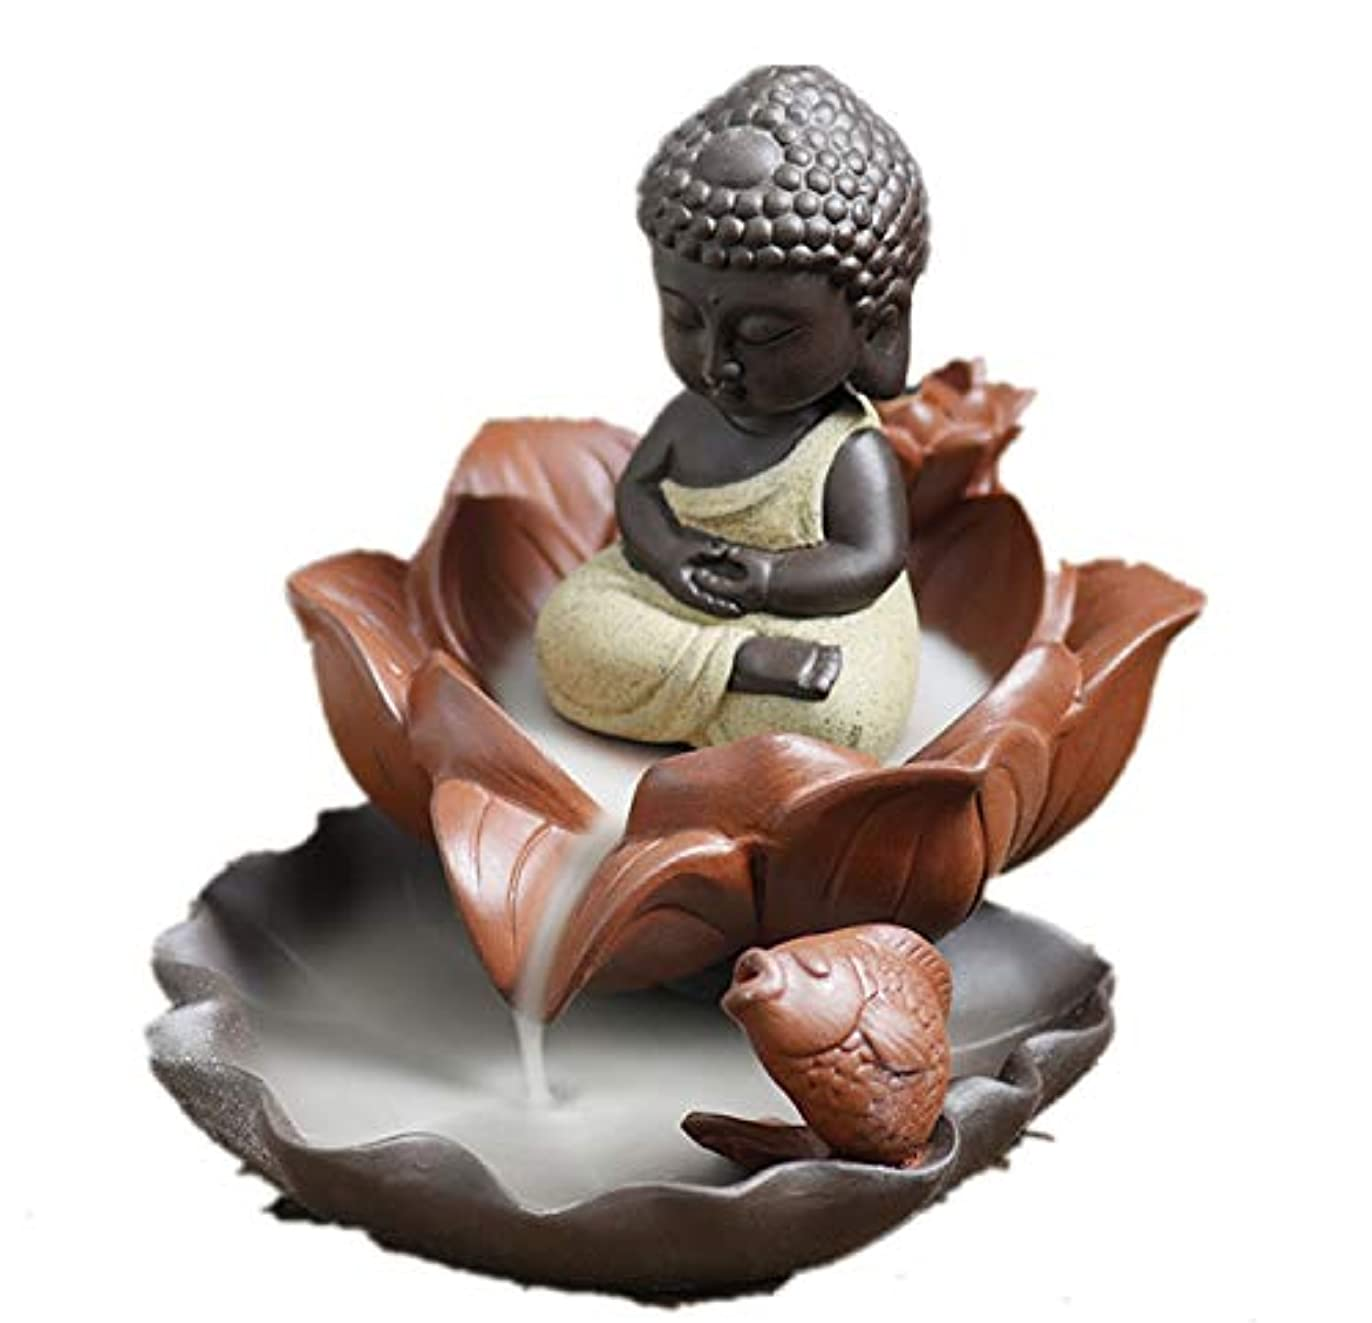 患者柔らかさ抽象XPPXPP Backflow Incense Burner, Household Ceramic Returning Cone-shaped Candlestick Burner